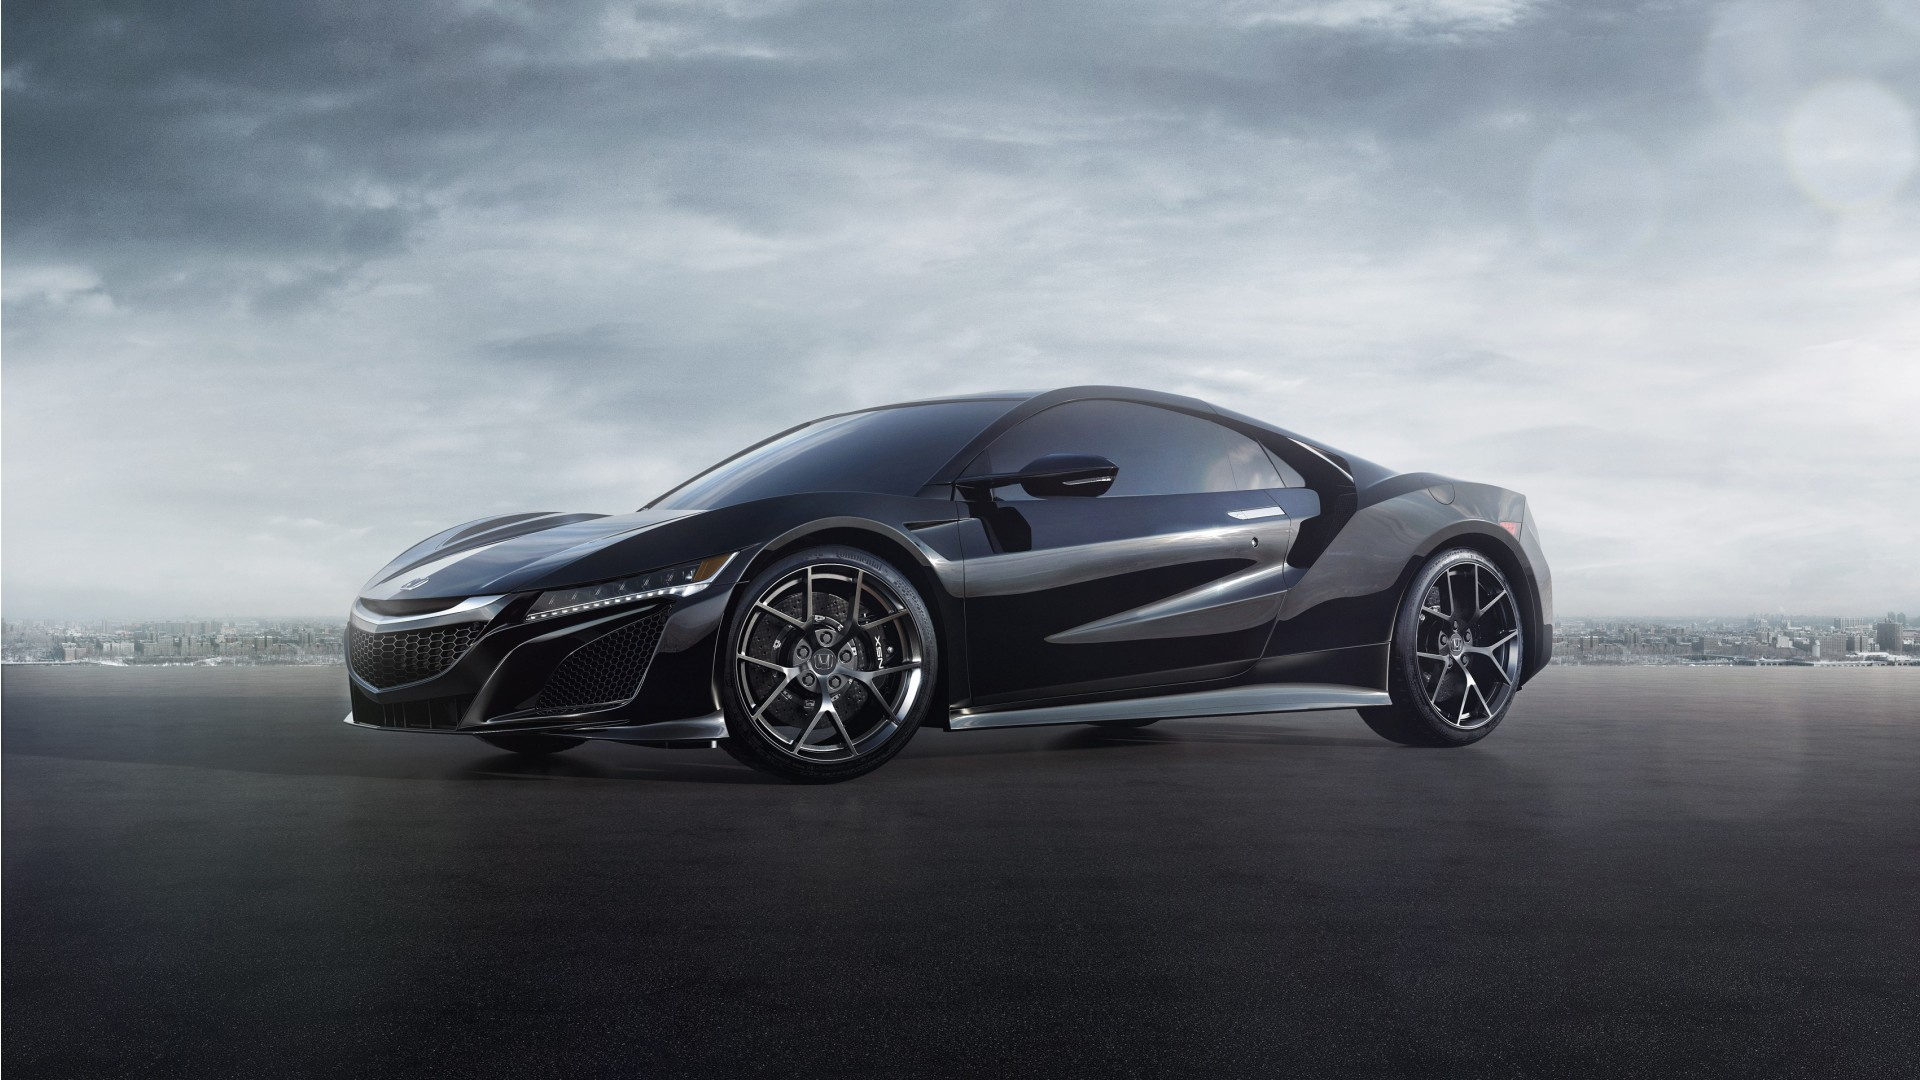 Bmw Cars Wallpapers 2012 Hd Honda Nsx 2018 Wallpaper Hd Car Wallpapers Id 9123